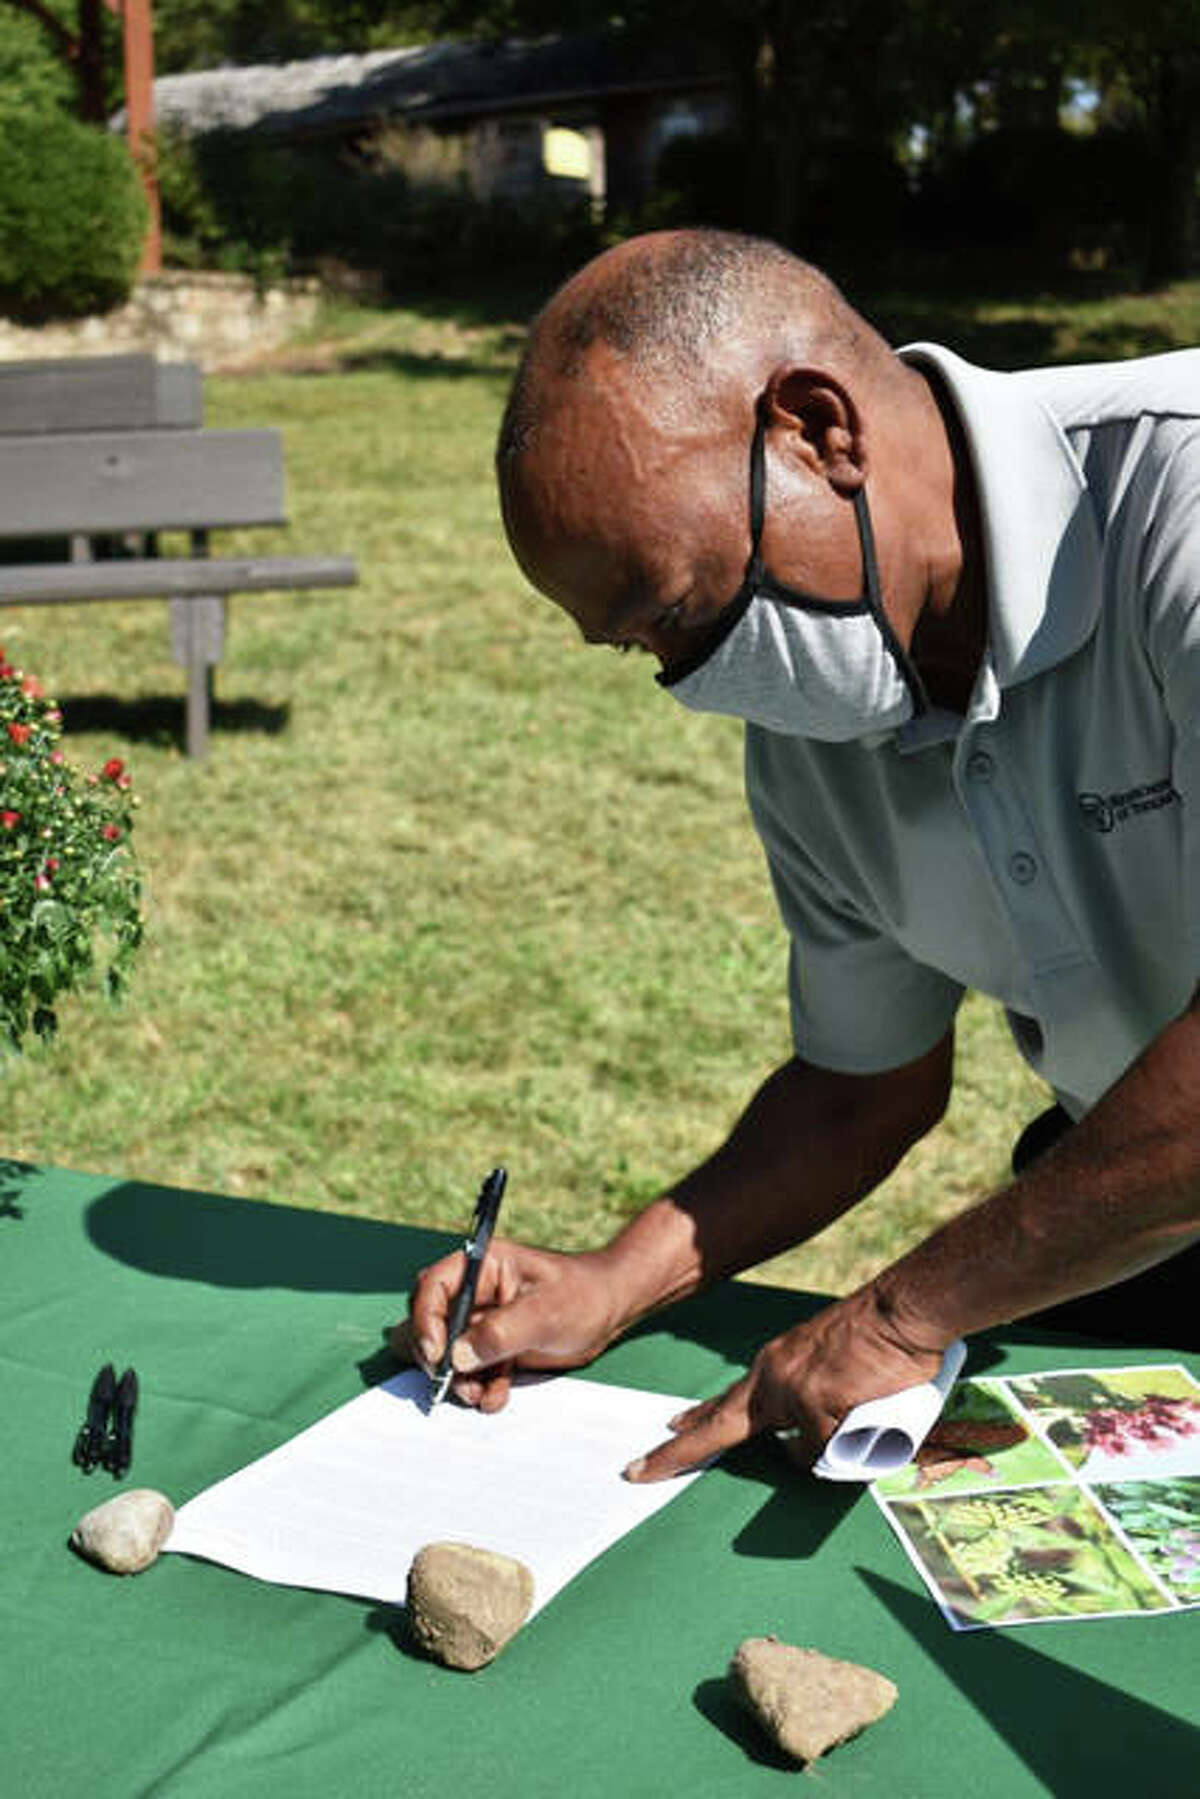 IDOT Acting Secretary Omer Osman signs the Illinois Monarch Action Plan last Thursday at Illinois State Fairgrounds' Conservation World.Tasked with bolstering the population of monarchs and other pollinators by protecting habitat and adding food sources, the project brings together public agencies, private organizations and residents of the state in a collaborative and coordinated effort to ensure the survival and successful migration of monarchs.